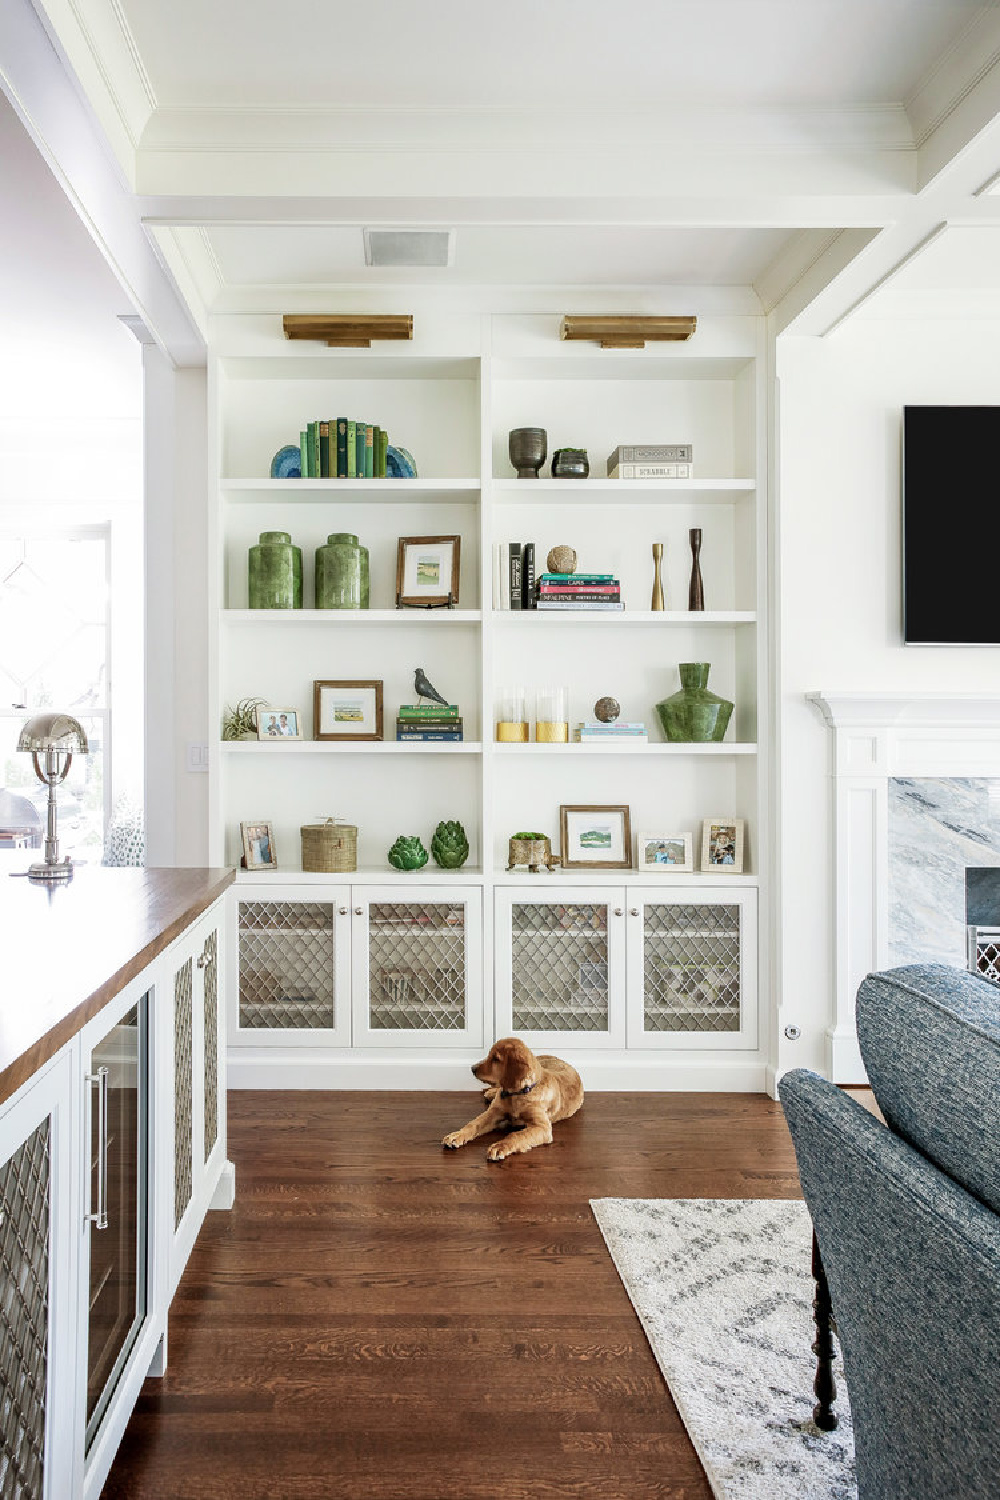 White painted built-ins in a living room with custom millwork and architecture by Edward Deegan. #builtins #classicstyle #livingroom